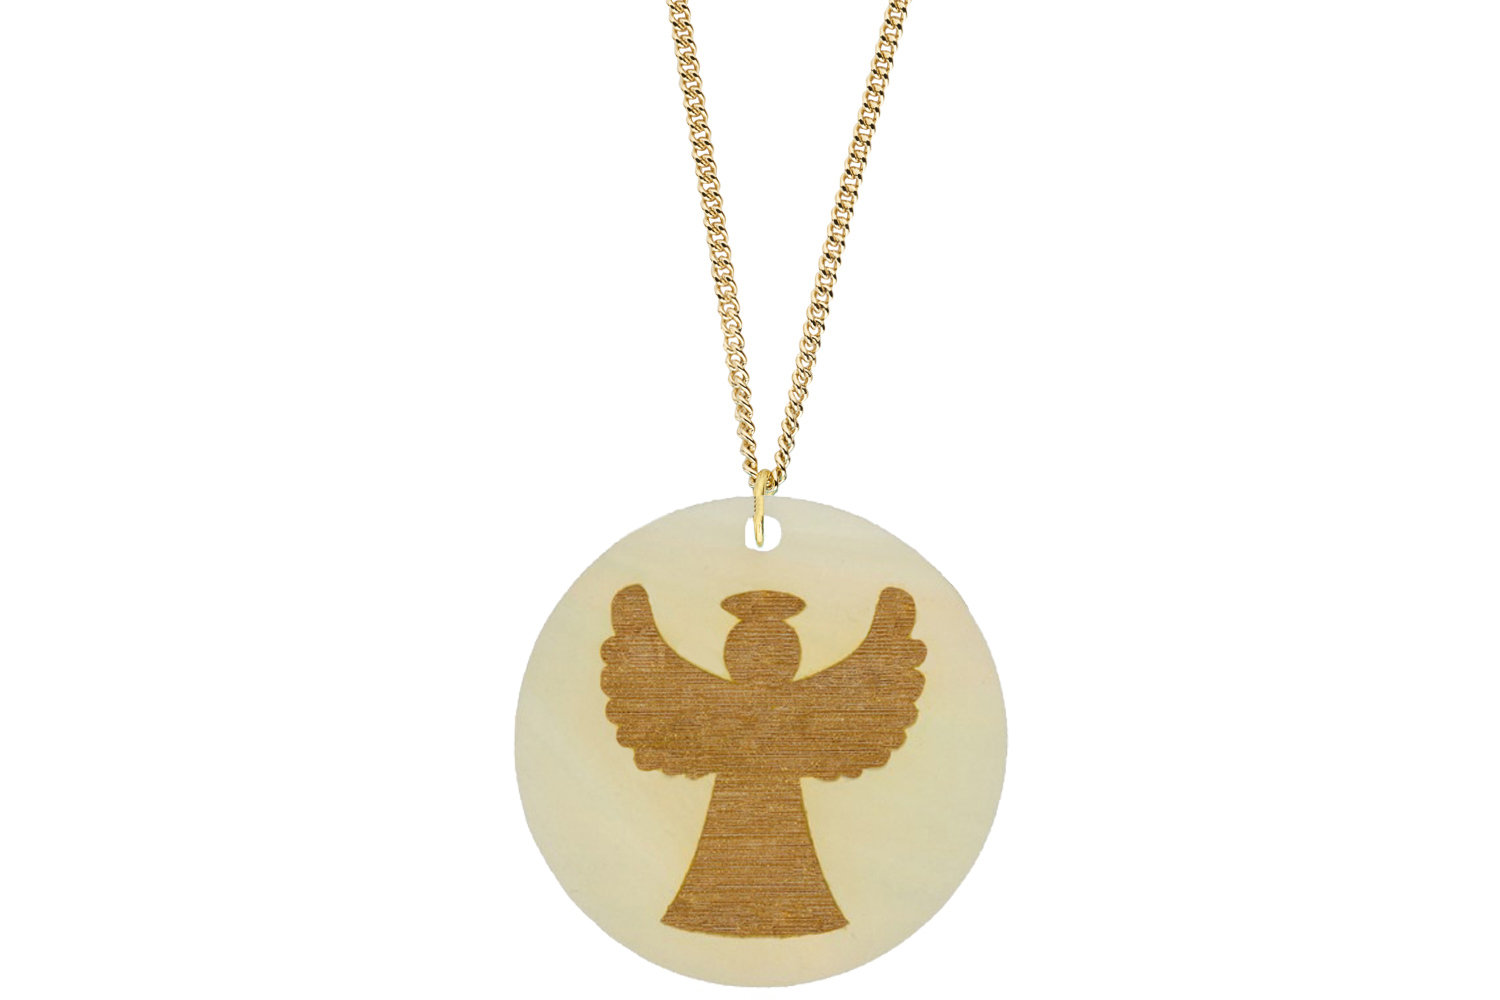 Angel Pendant Subtle Style Refined with Paint on Chain Necklace